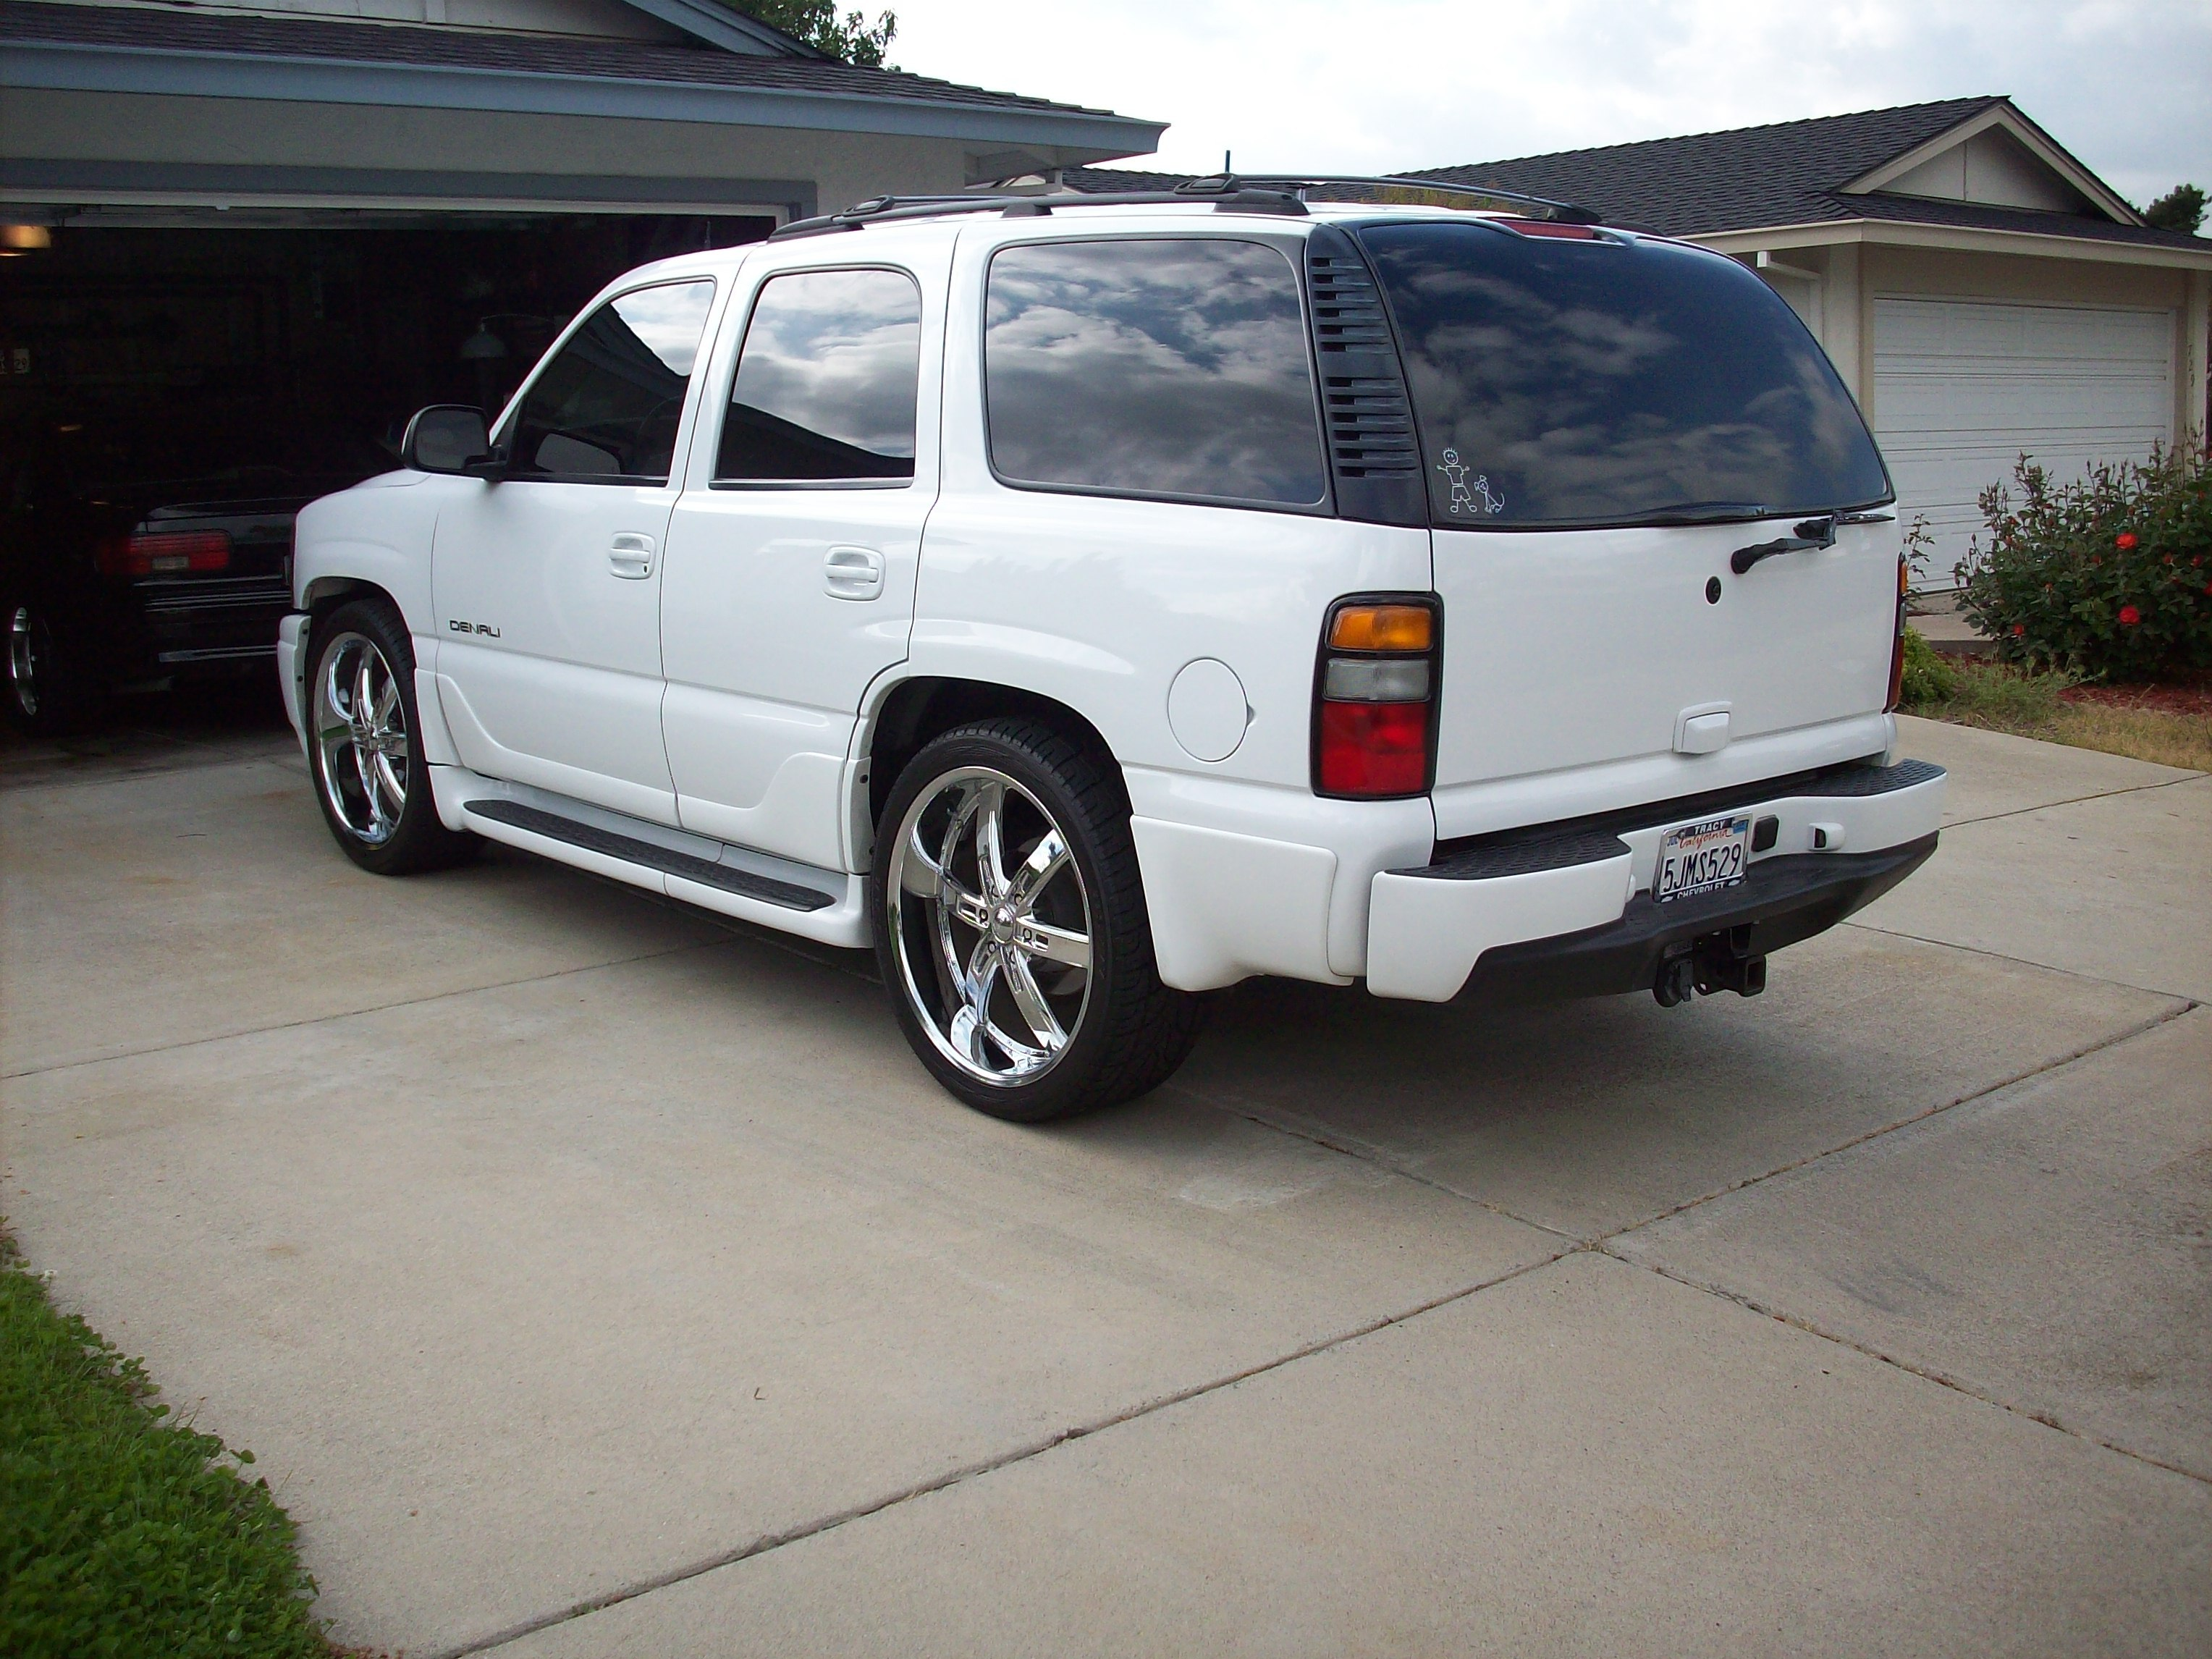 lt4t56ss 2004 gmc yukon denali specs photos modification. Black Bedroom Furniture Sets. Home Design Ideas